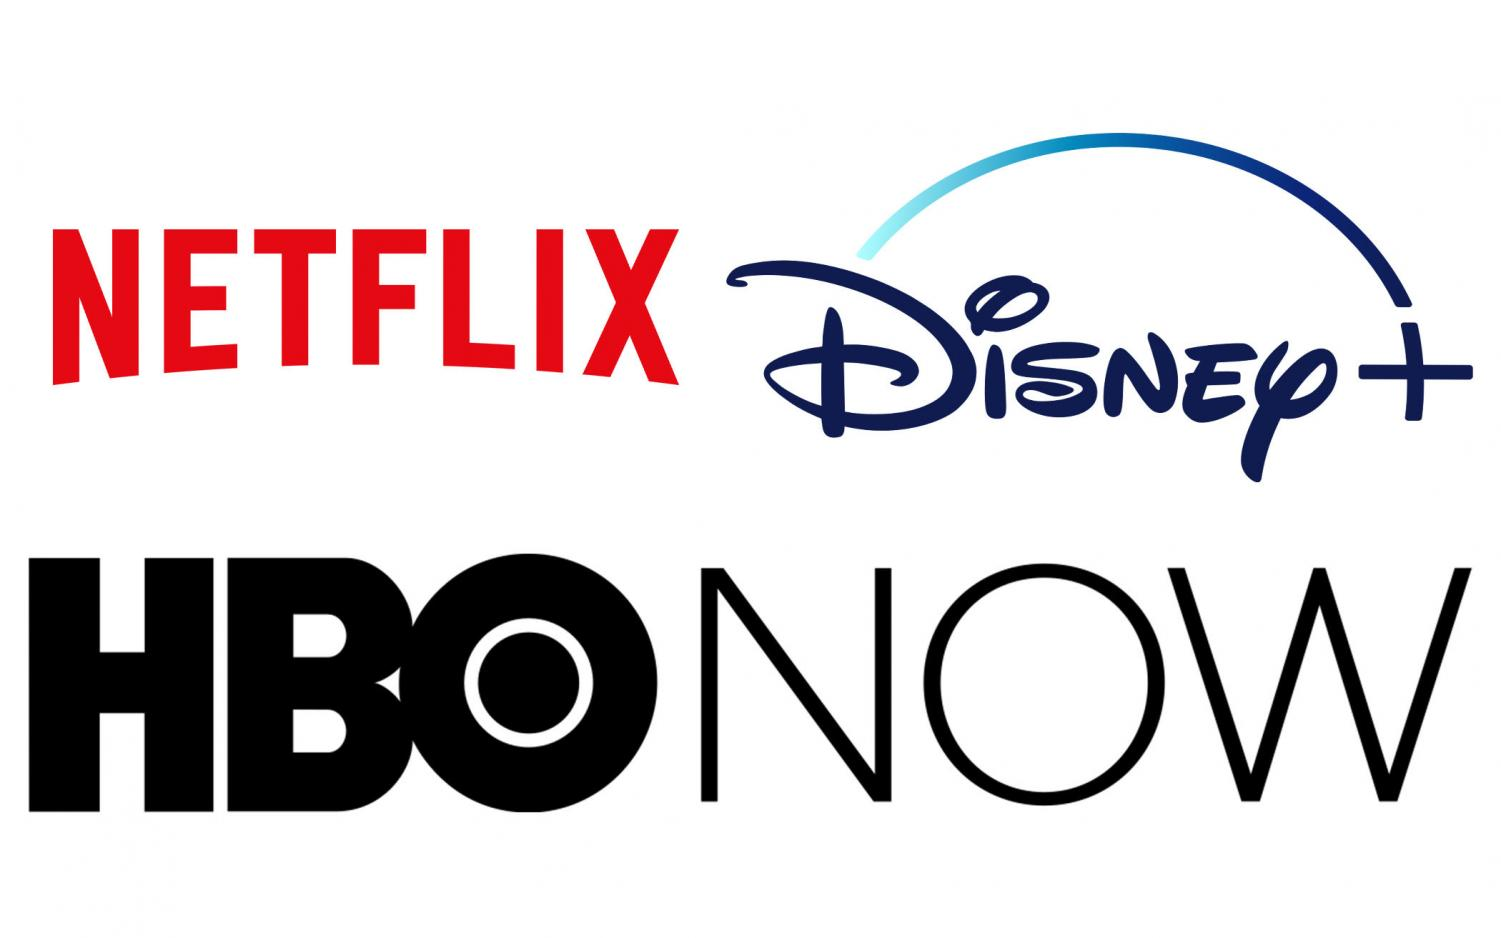 Netflix, Disney Plus, and HBO Now fight to make their streaming services more prominent by including popular shows and movies in order to gain more traction of their service. Netflix, Disney + and HBO Now logos compiled by Brian Delgado.